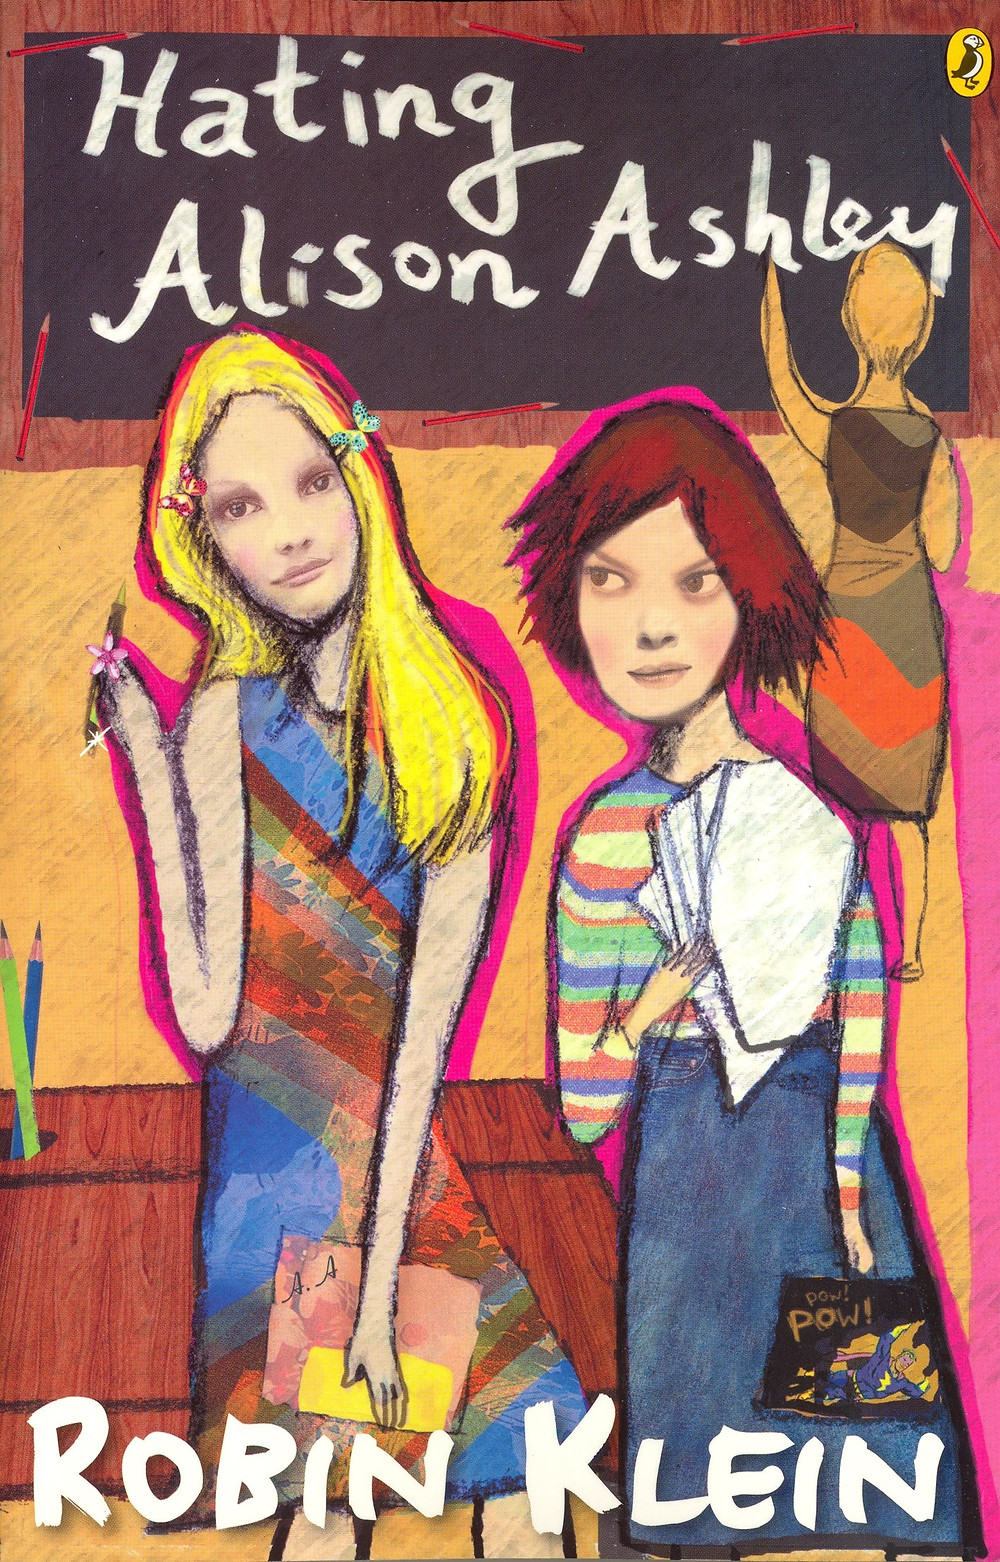 Hating Alison Ashley by Robin Klein